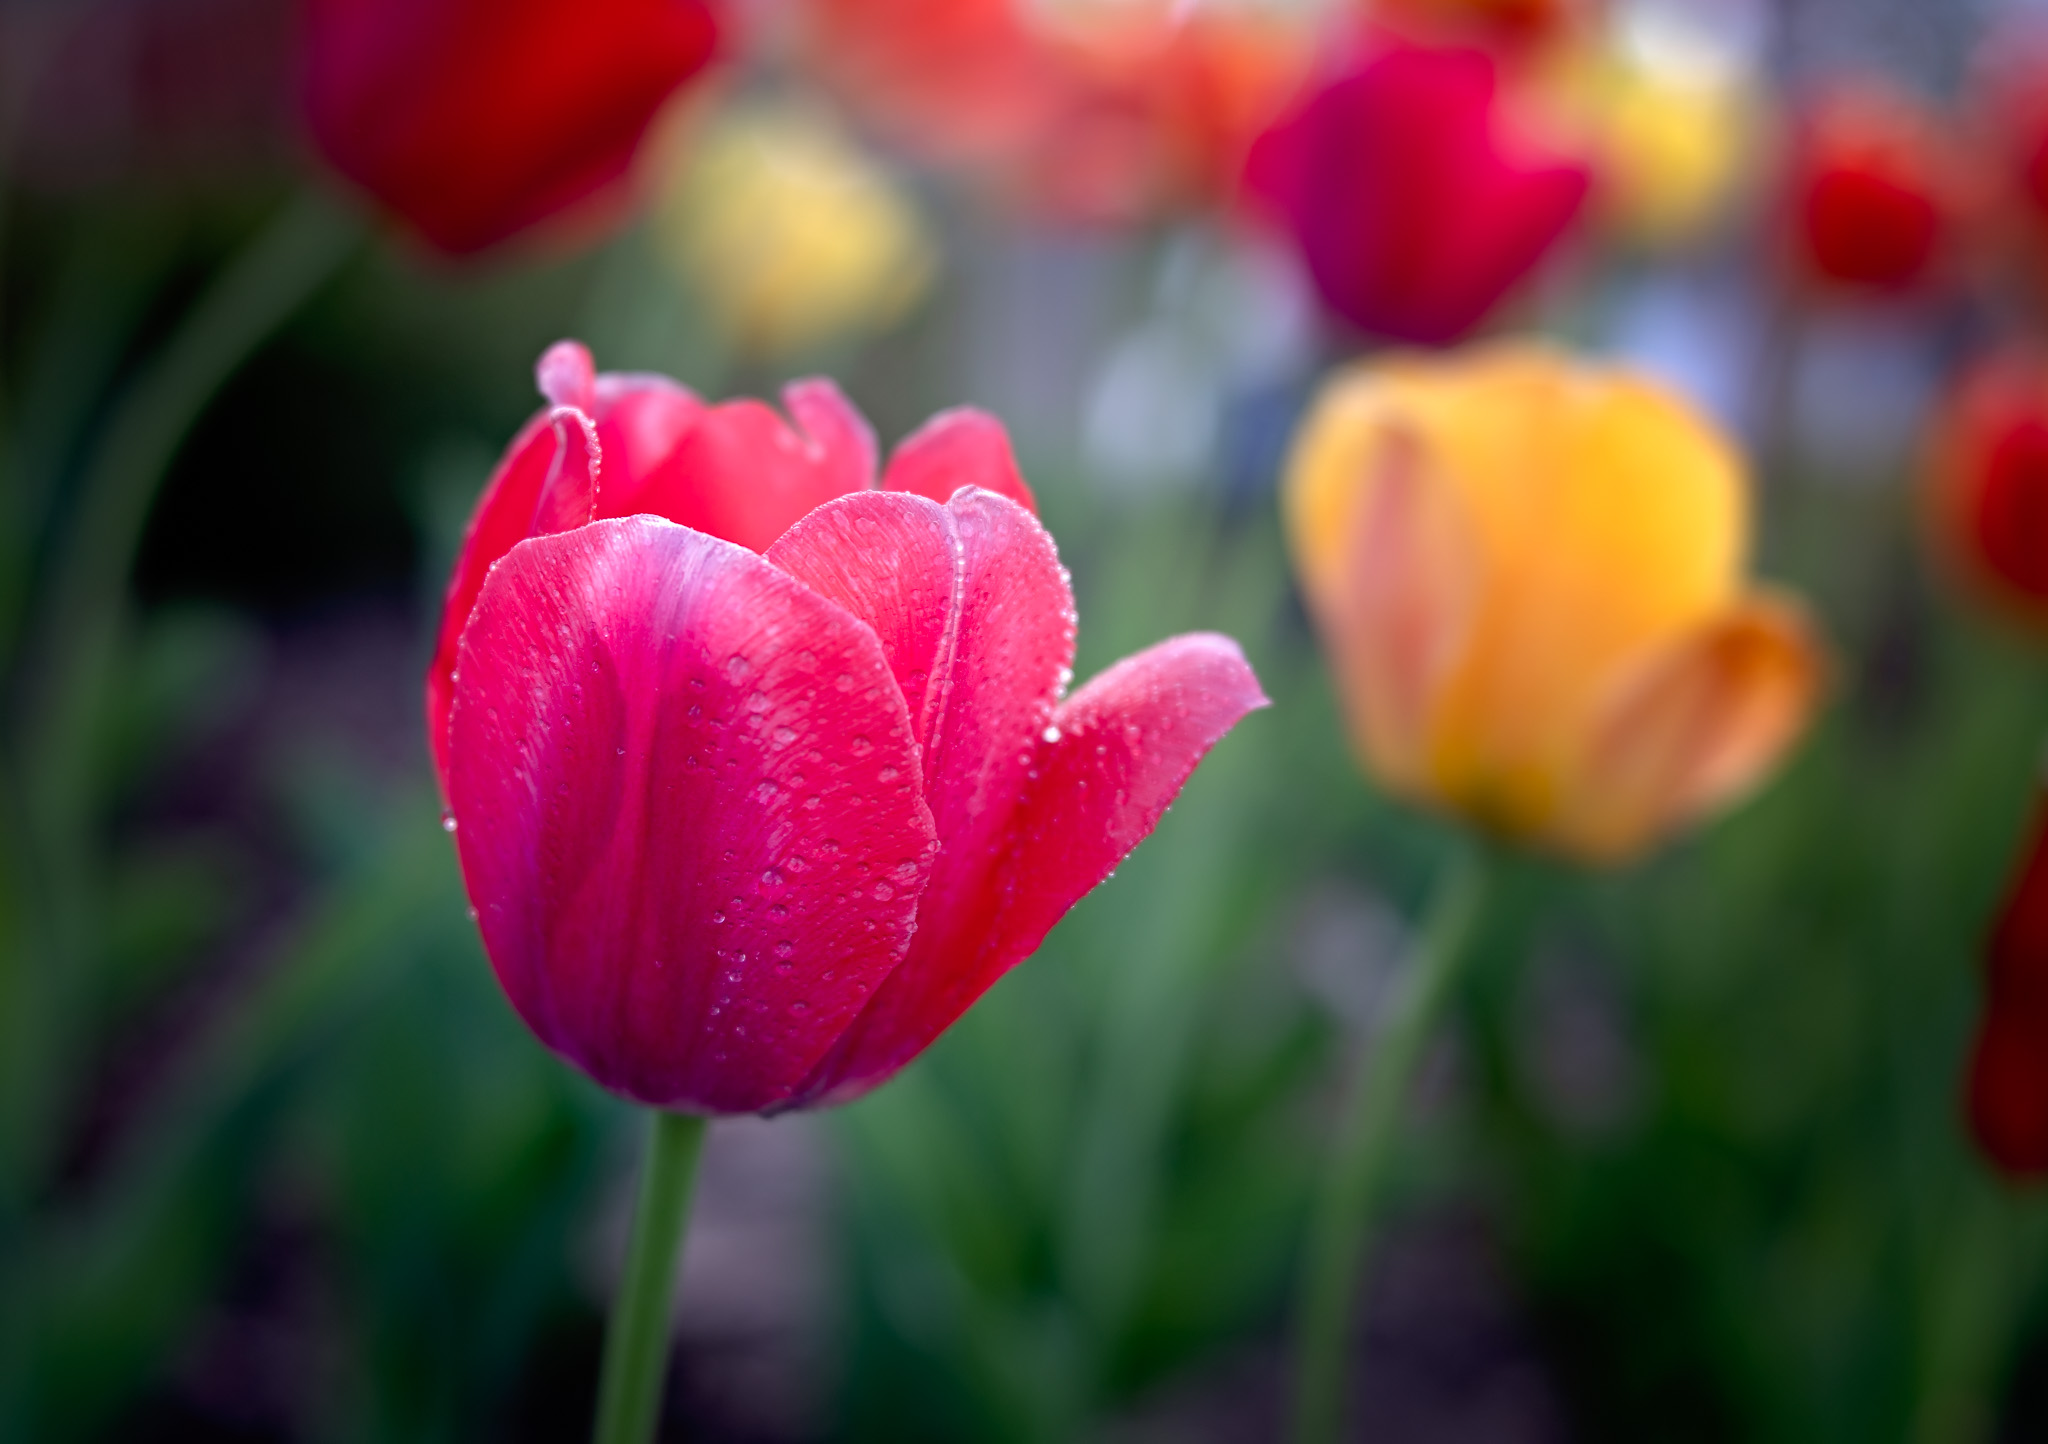 Tulips with Lensbaby